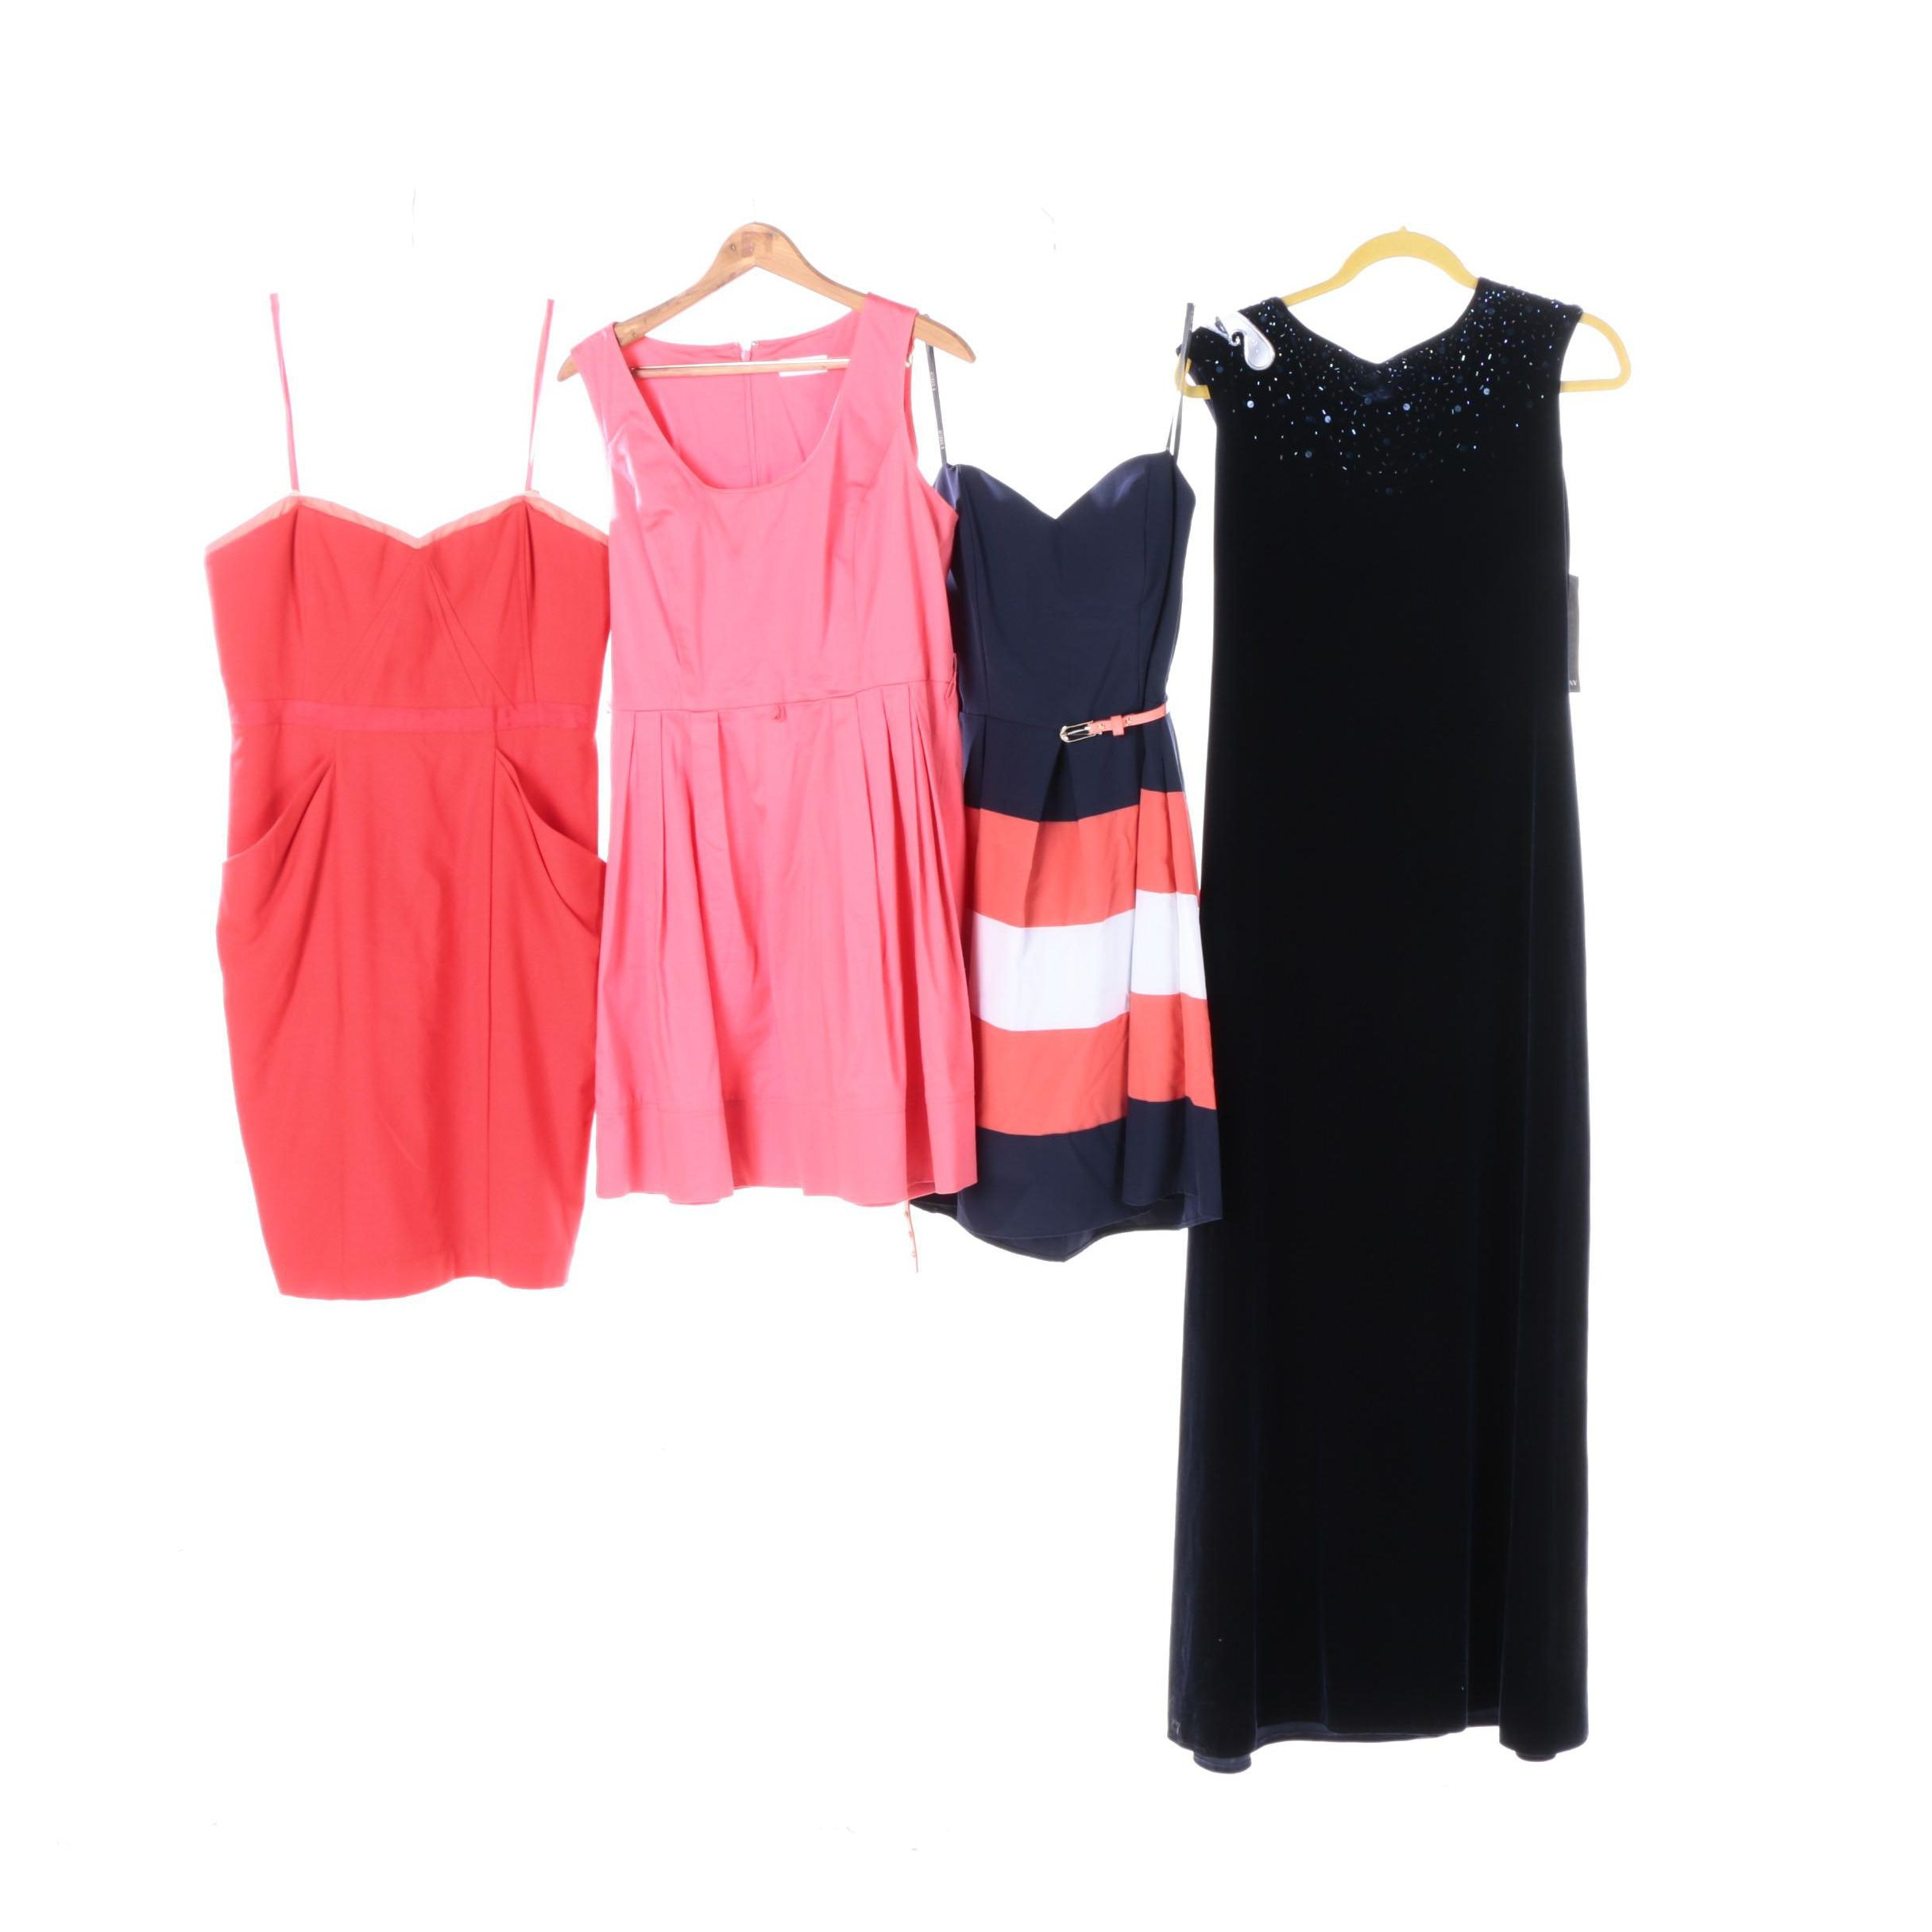 Women's Summer Dresses and Cocktail Dress Including Calvin Klein